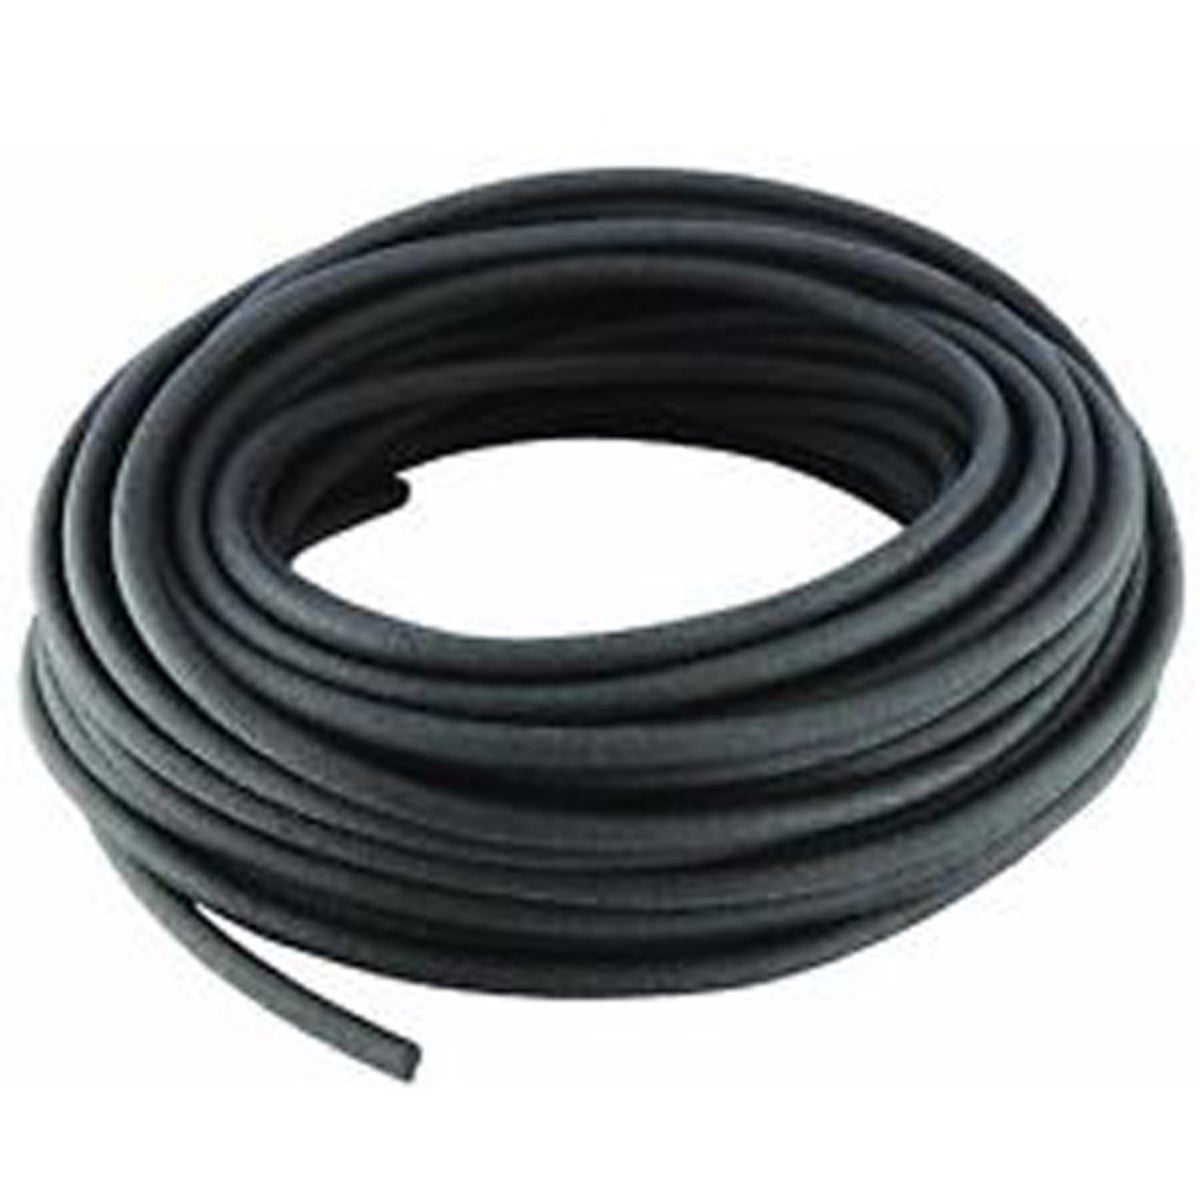 "1/4""X100' FILLER ROPE - 30251 by Sashco Sealants Inc"